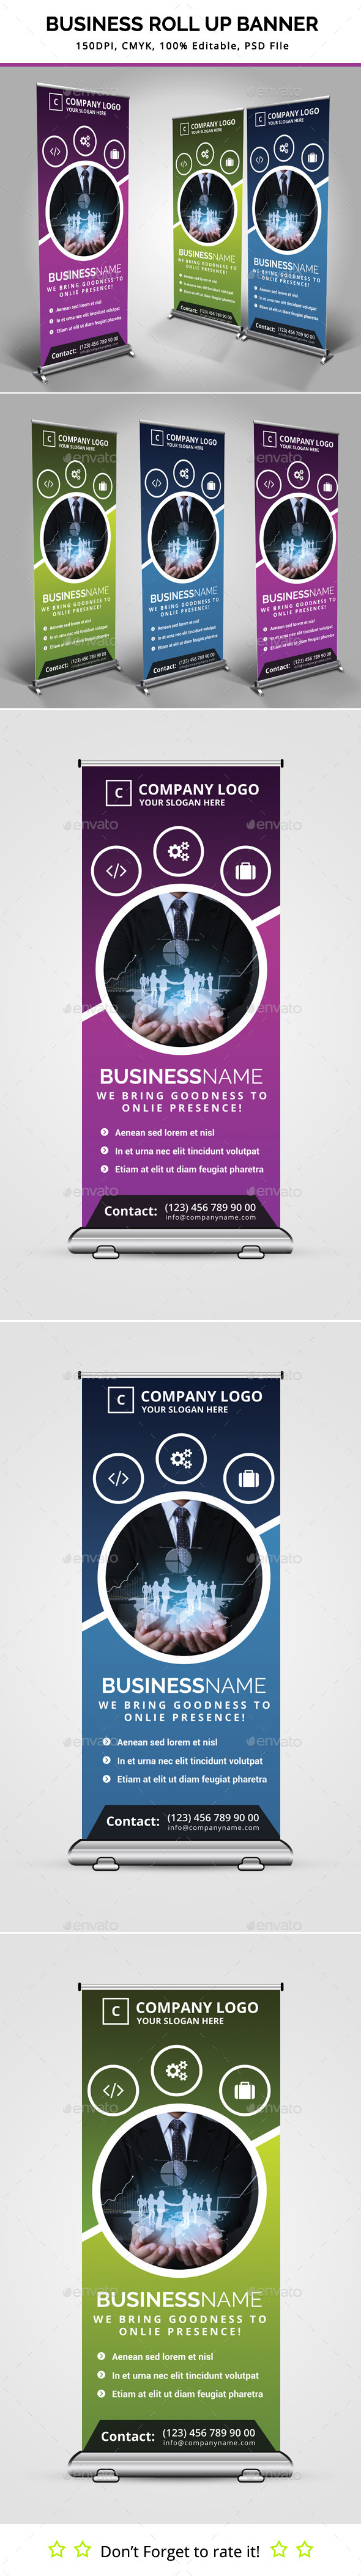 GraphicRiver Business Roll Up Banner V10 11531891